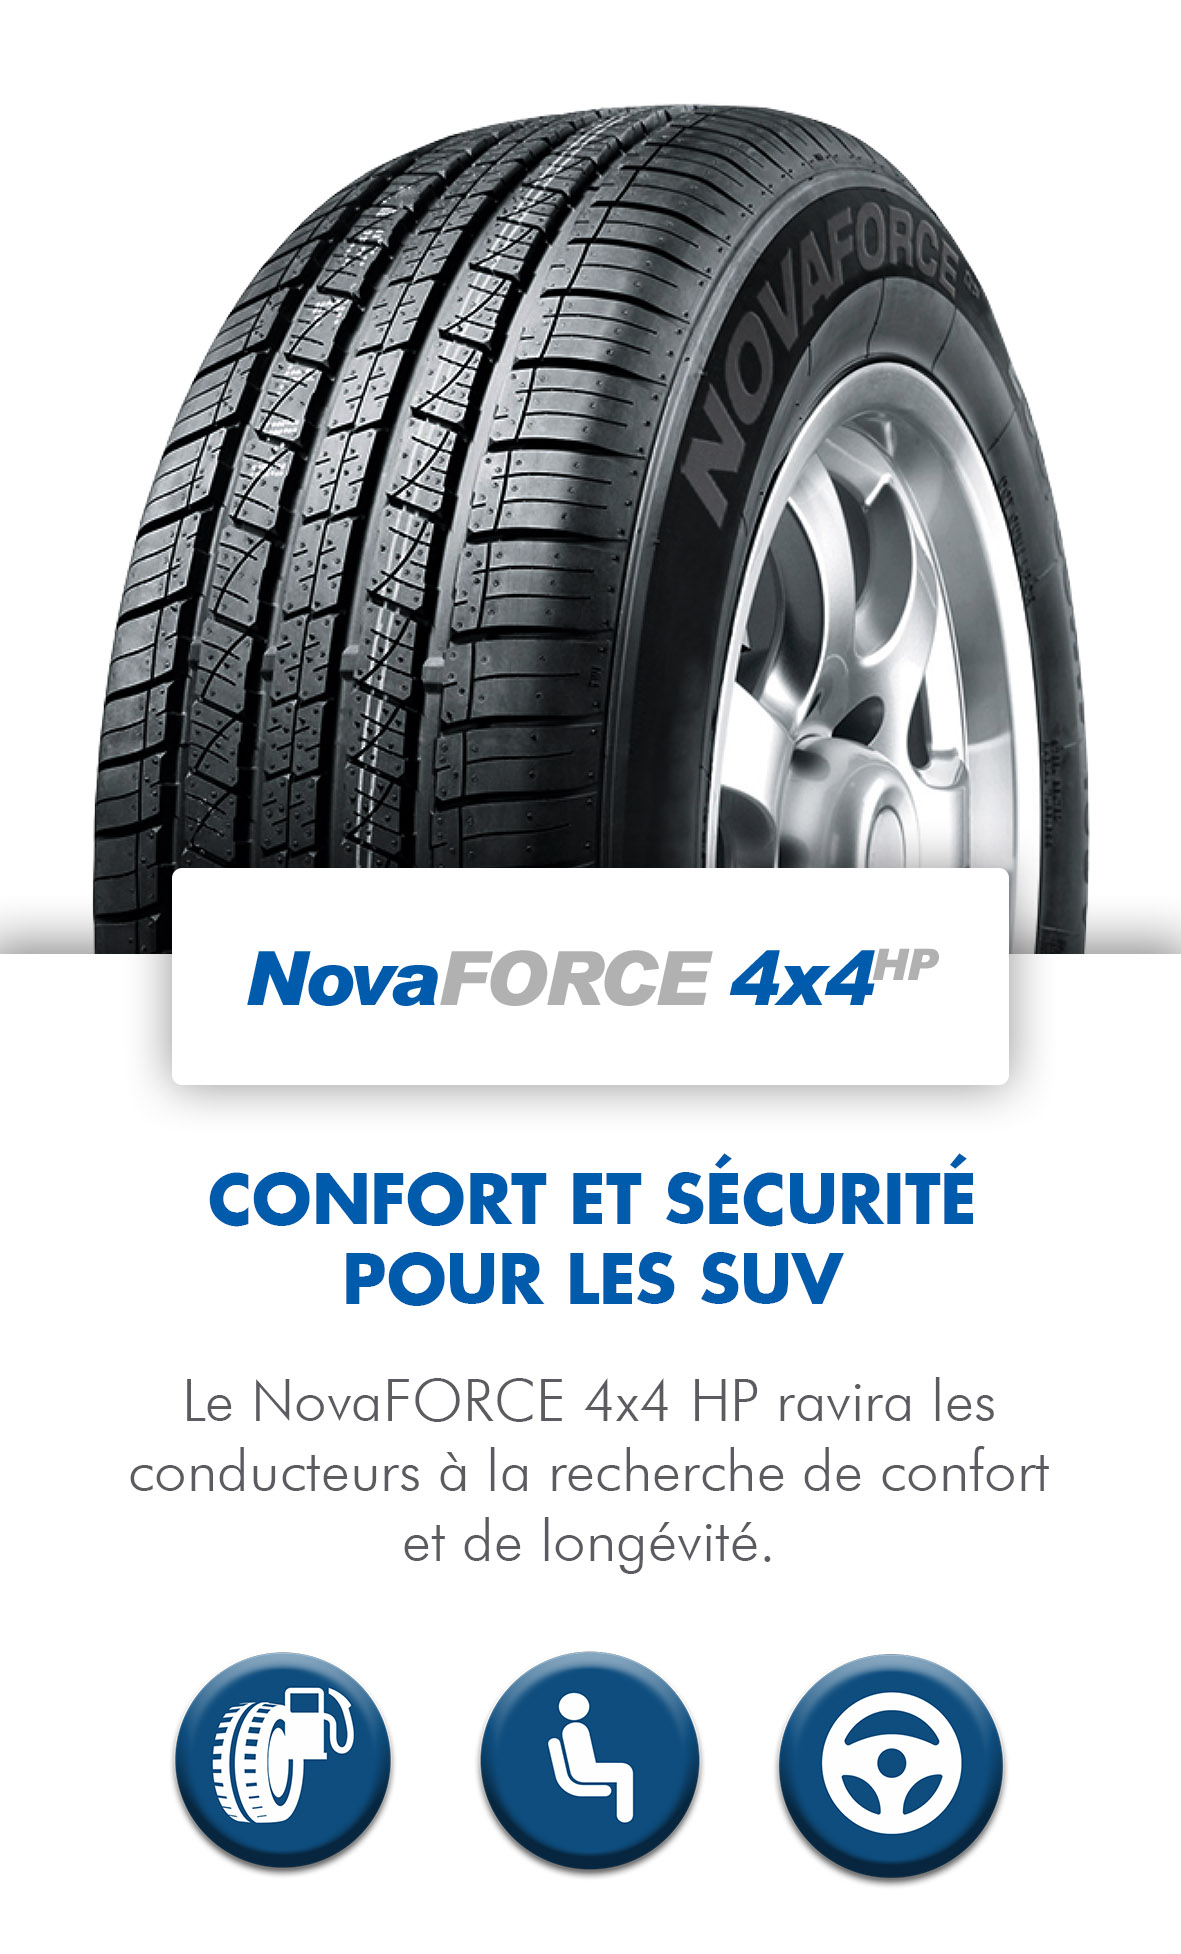 NovaForce4x4hp